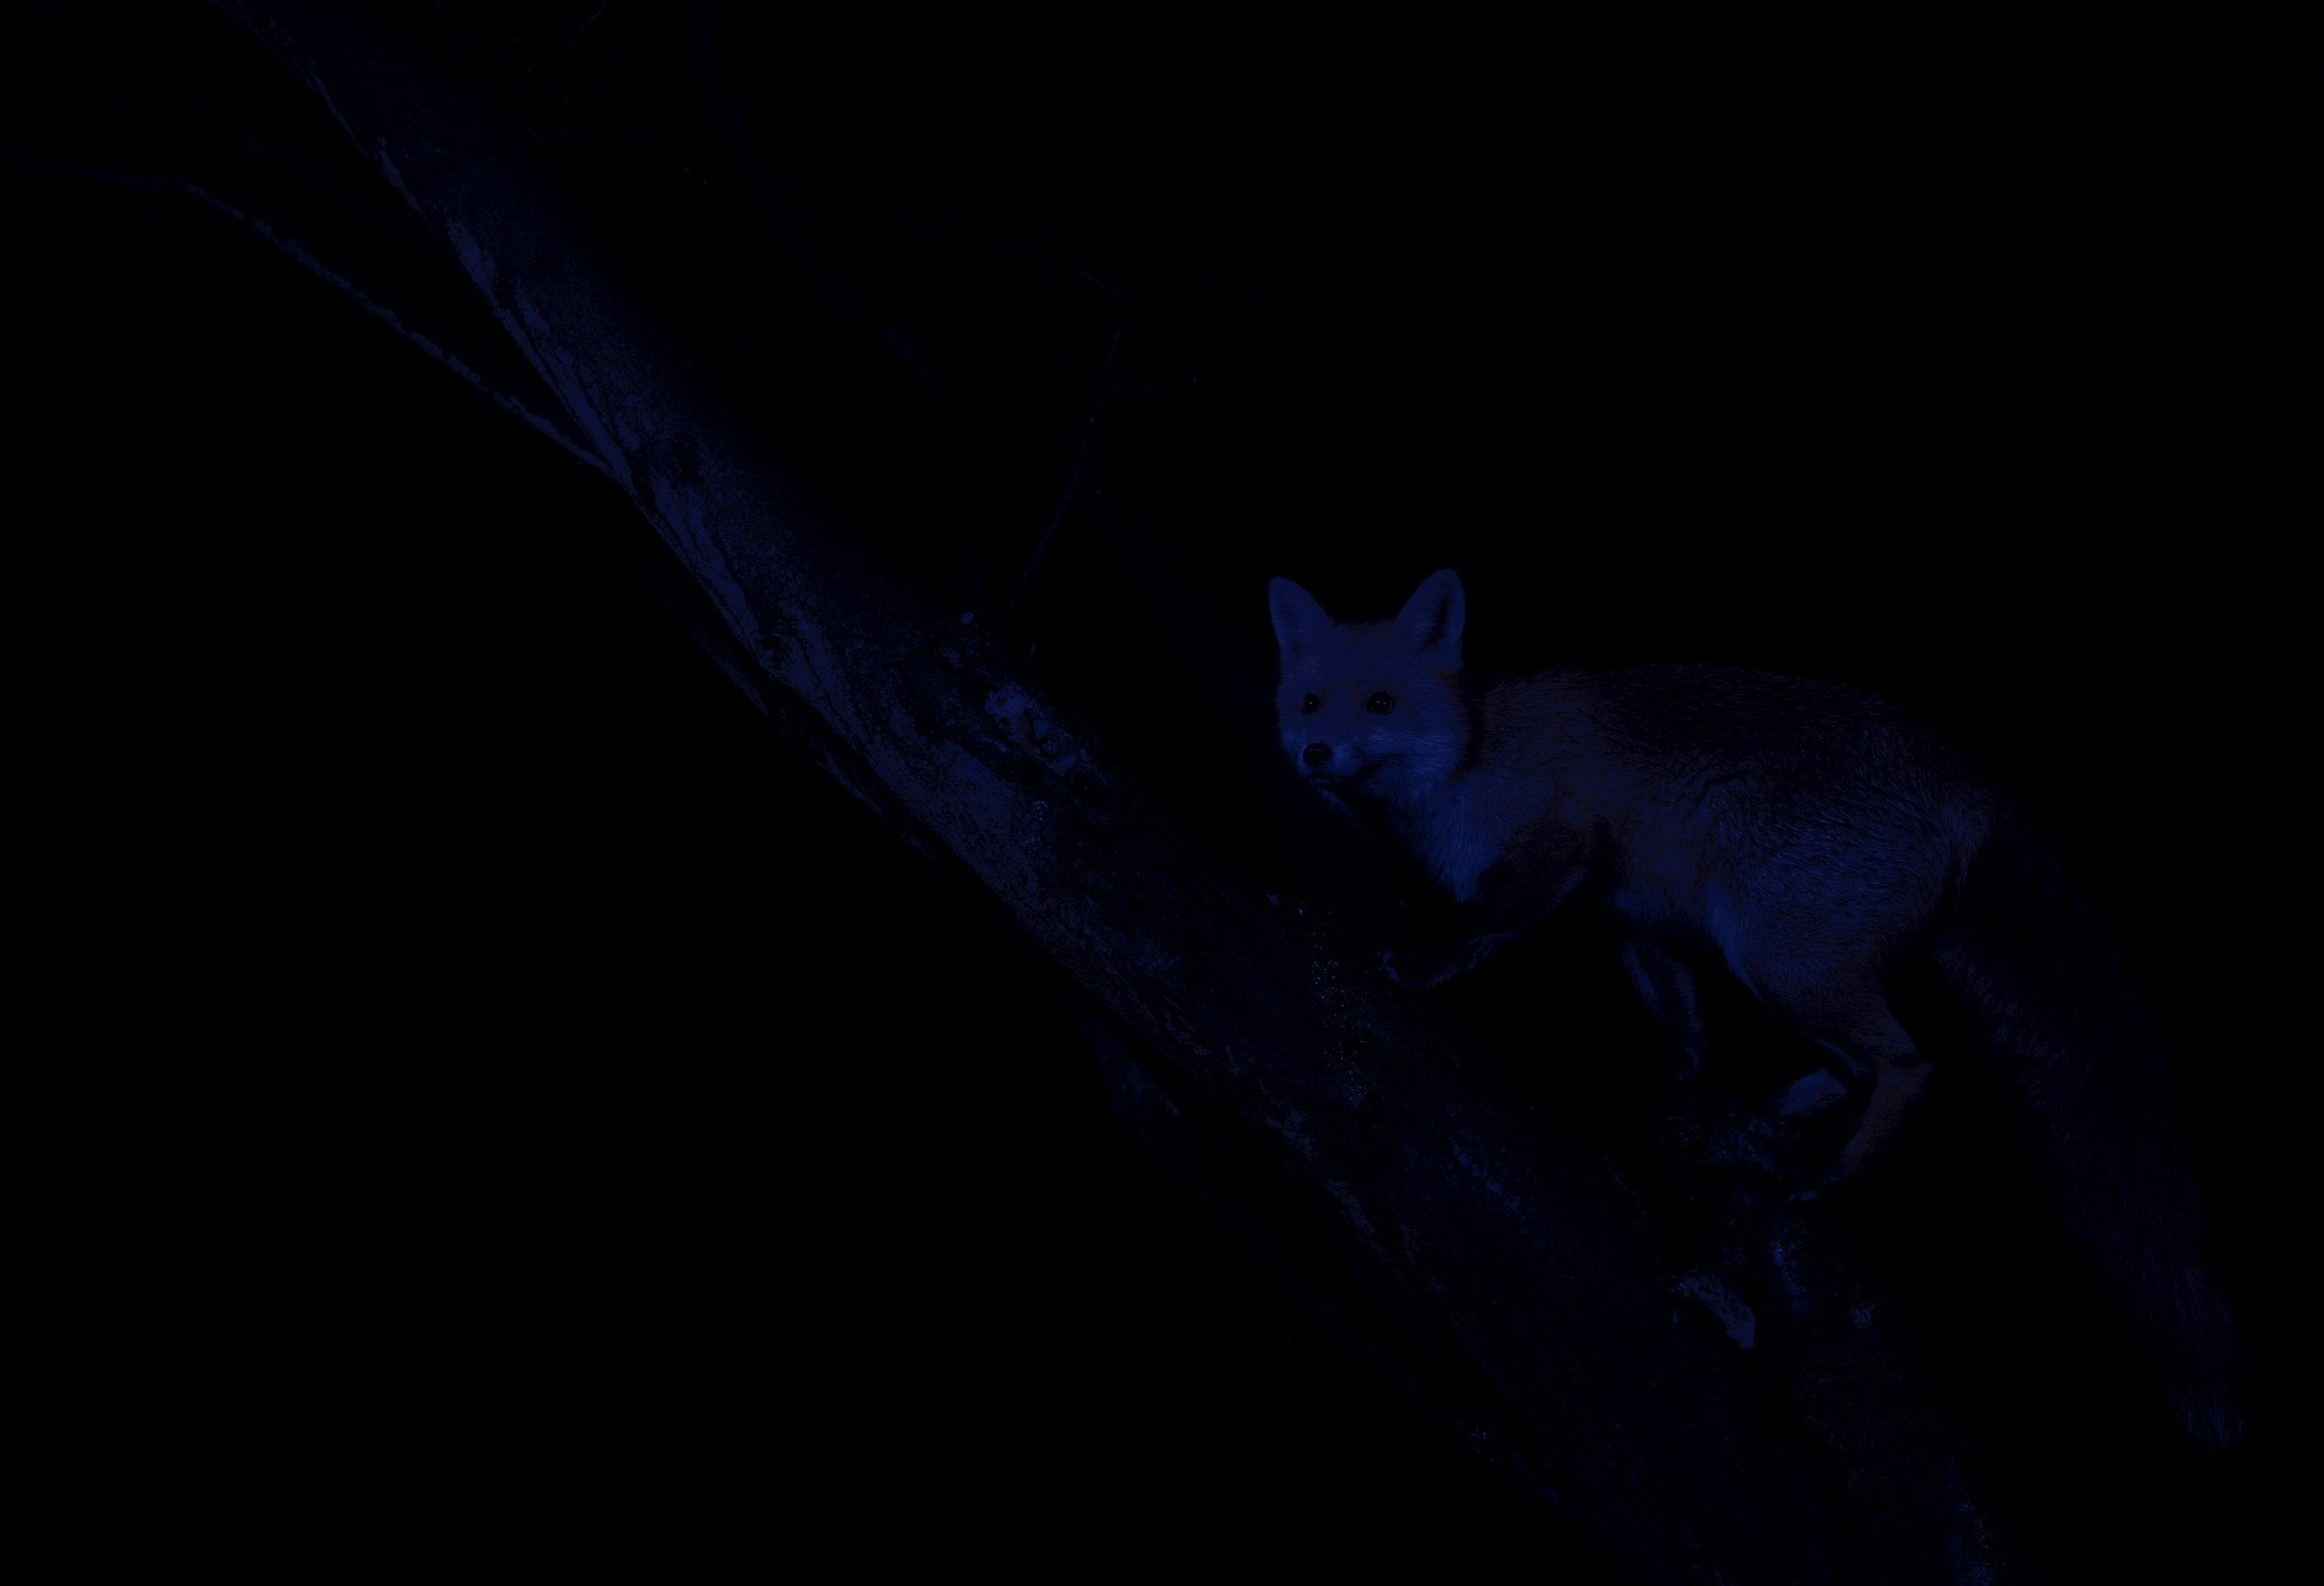 Before Night Fox